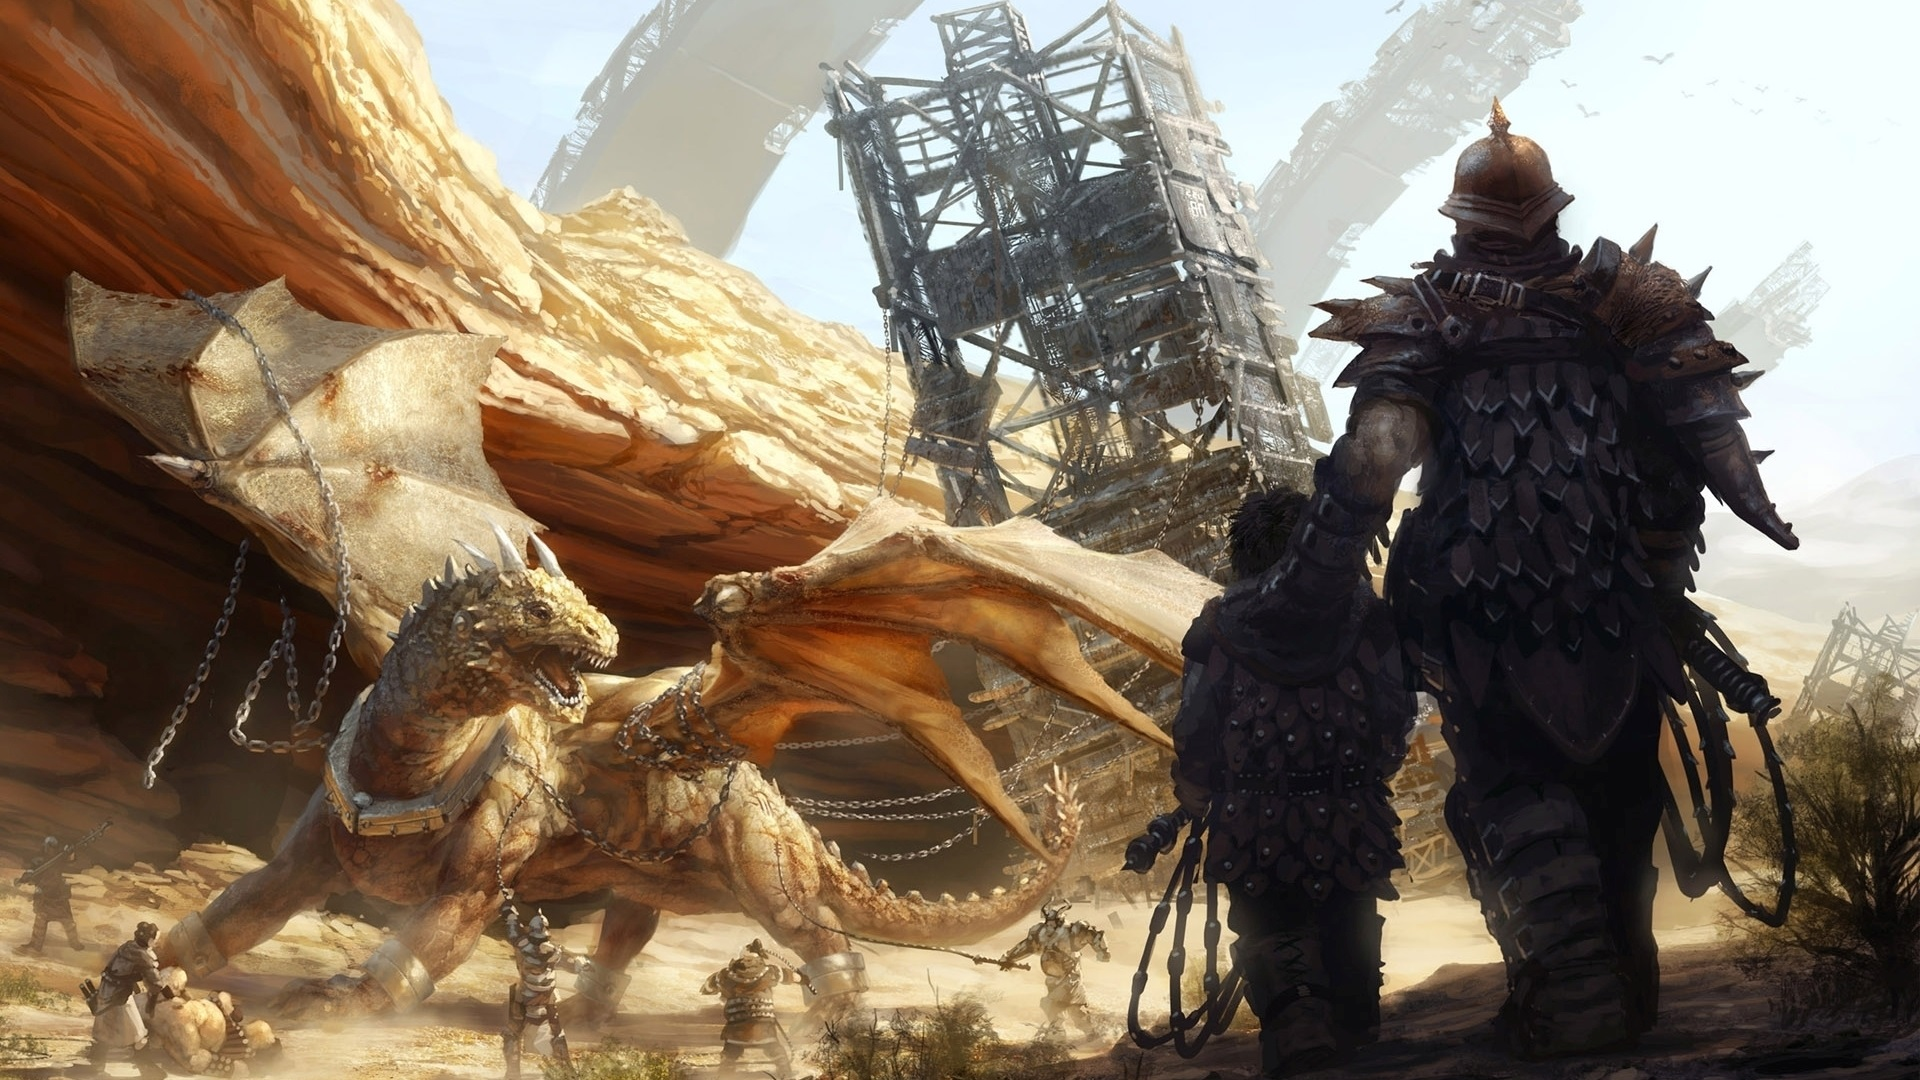 Free Download Dragon Age Inquisition Wallpaper Hd 1920x1080 For